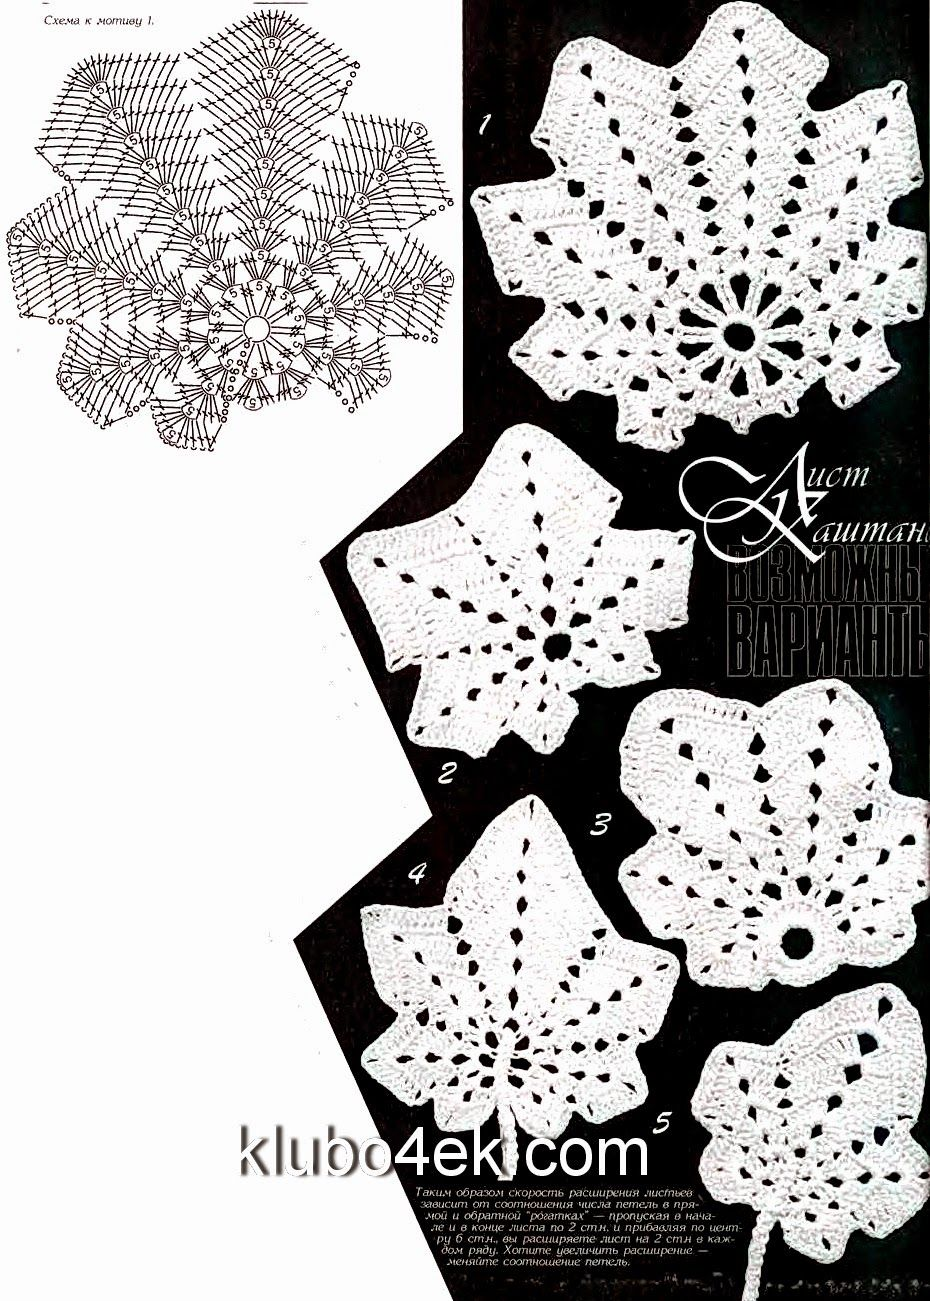 Pin by muhterem akova on a5 pinterest form crochet irish lace irish lace crochet crochet patterns clothing and decorations for the house crocheted bankloansurffo Gallery